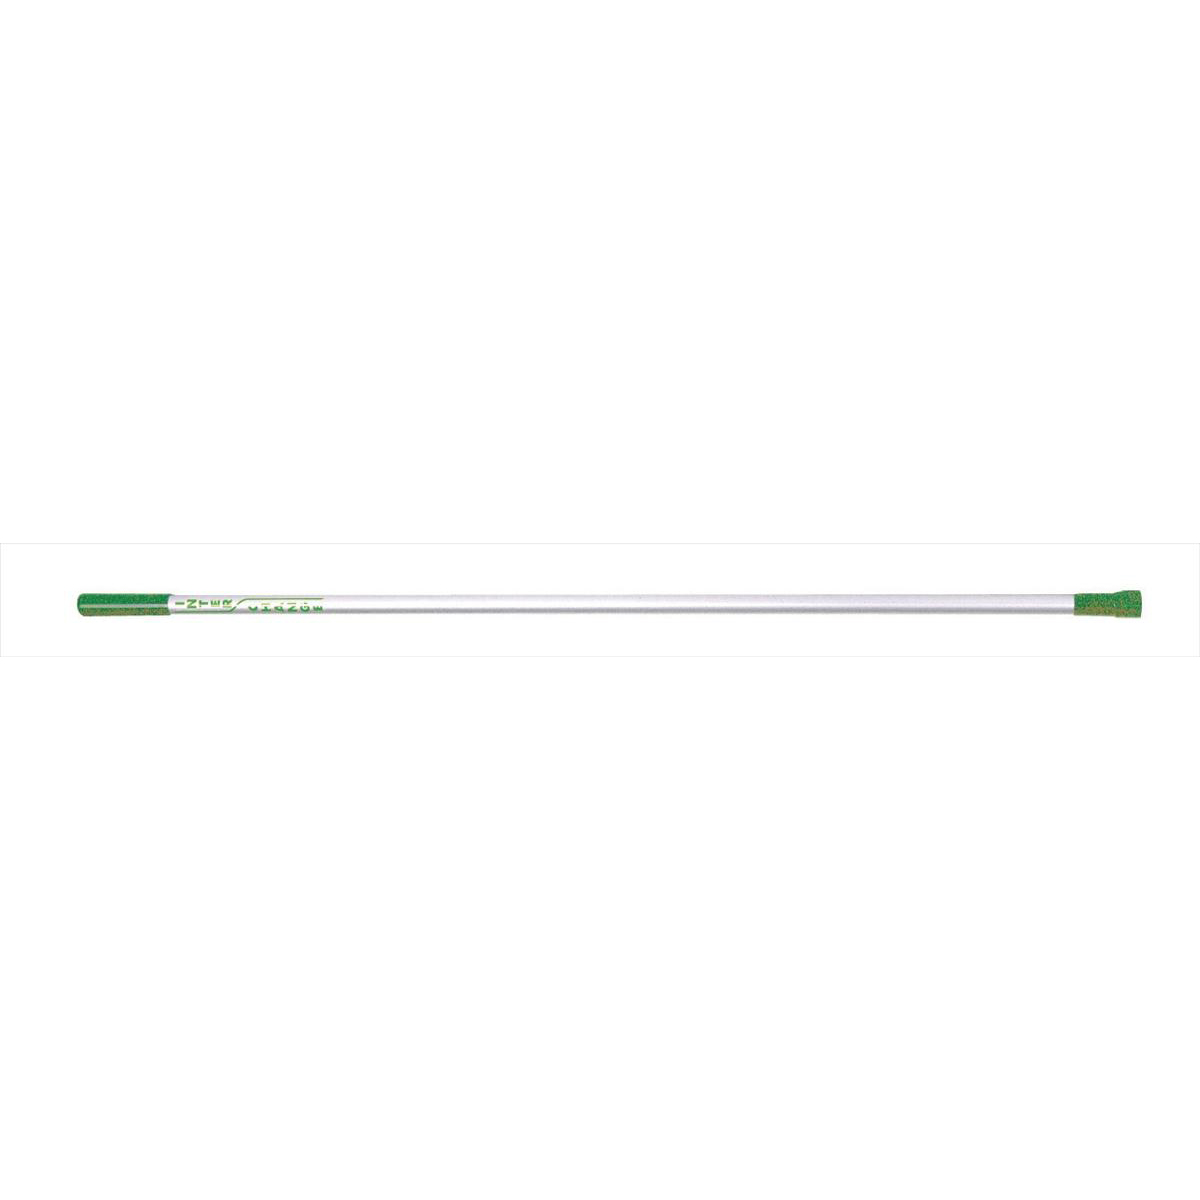 Broom or mop handles Scott Young Research Interchange Aluminium Mop Handle Green Ref MHACG